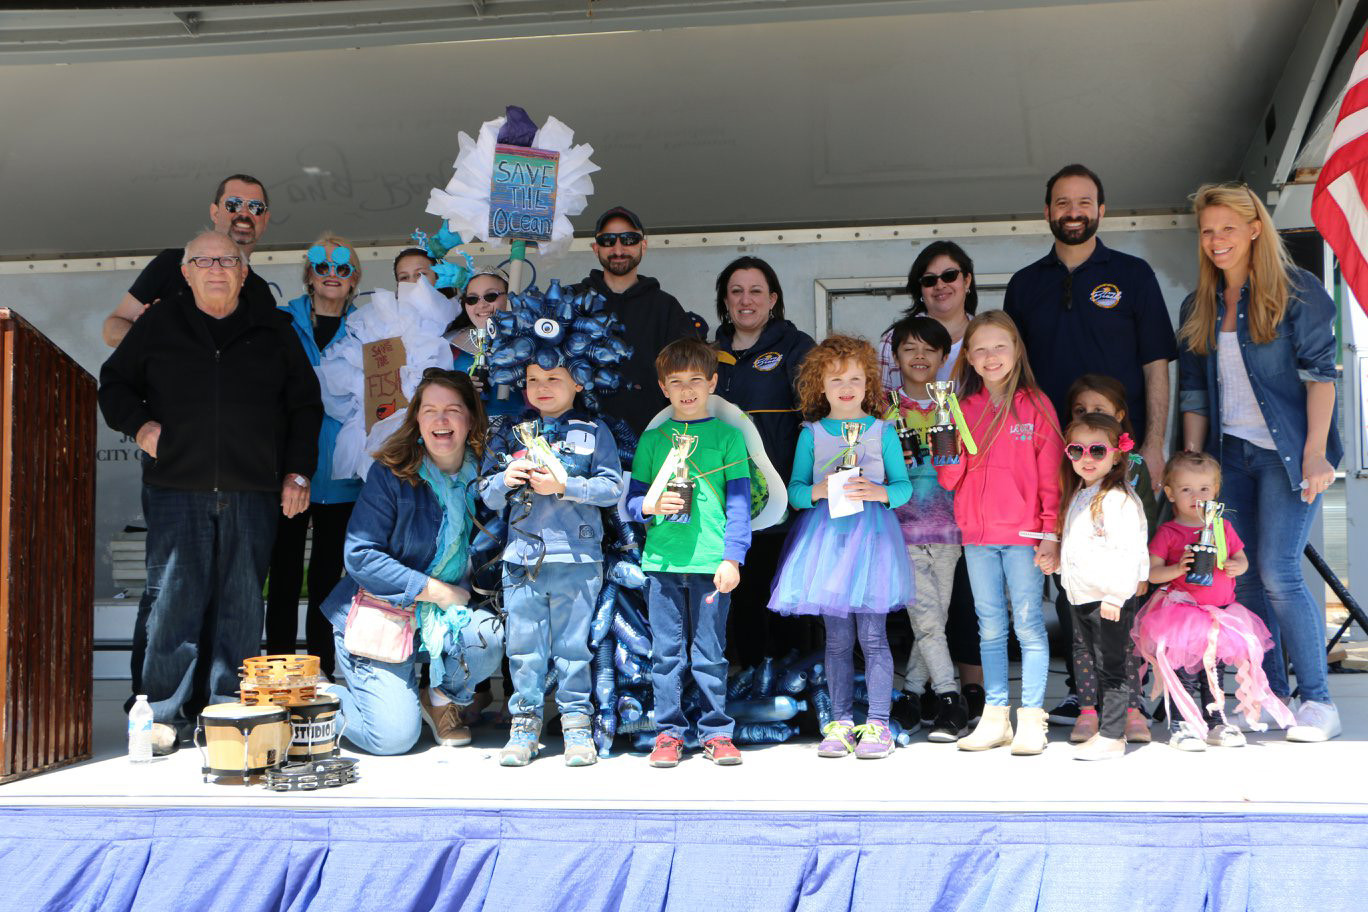 The winners of the Jellyfish Jamboree costume and float contests showed off their costumes and prizes.